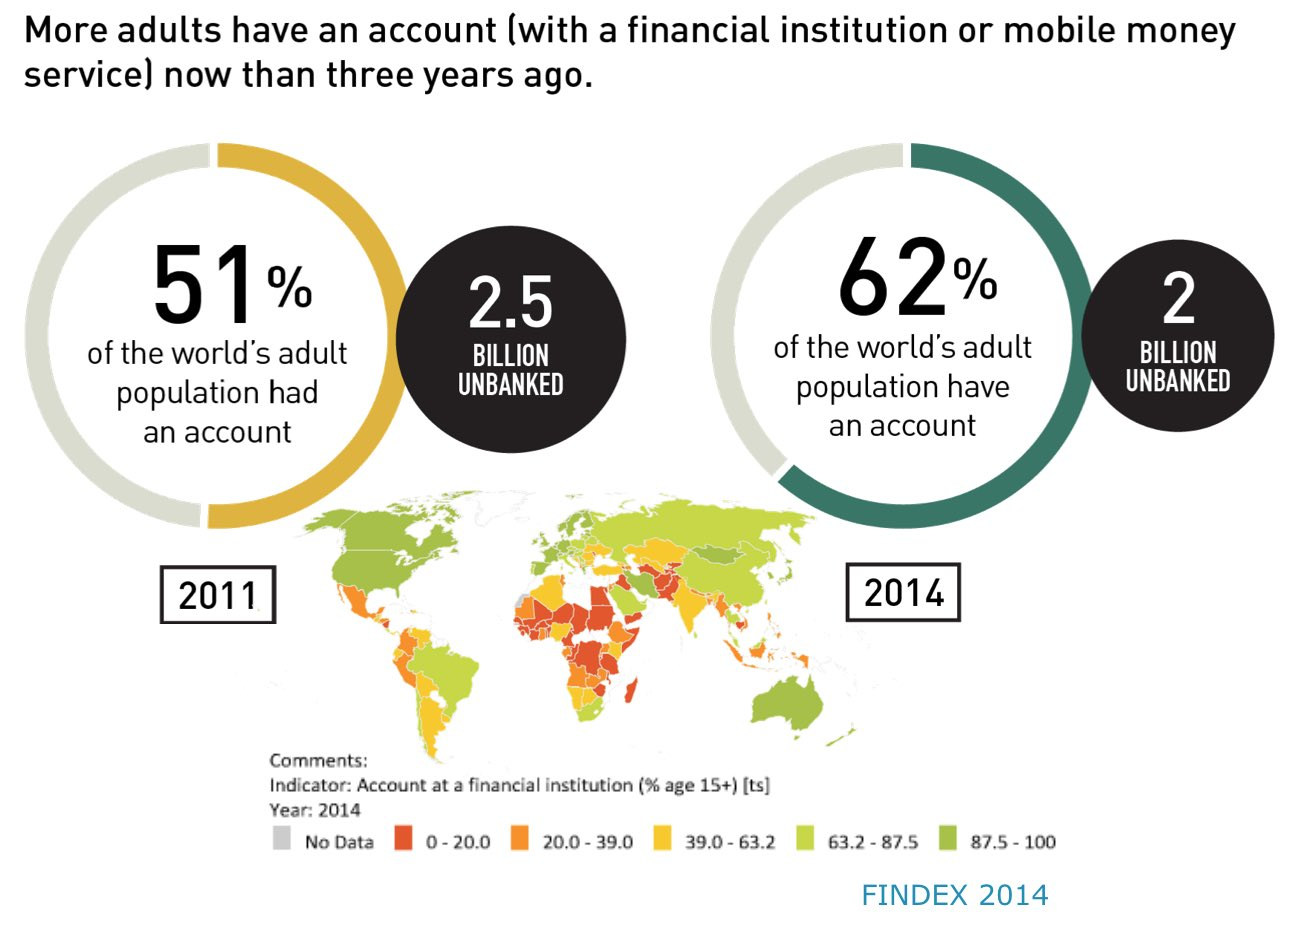 Still staggering 2 million unbanked. As of 3 yrs ago 62% global population has bank account up from 51% 3 yrs earlier (IMFdata) #CEFlearning https://t.co/V8M1Sleahi